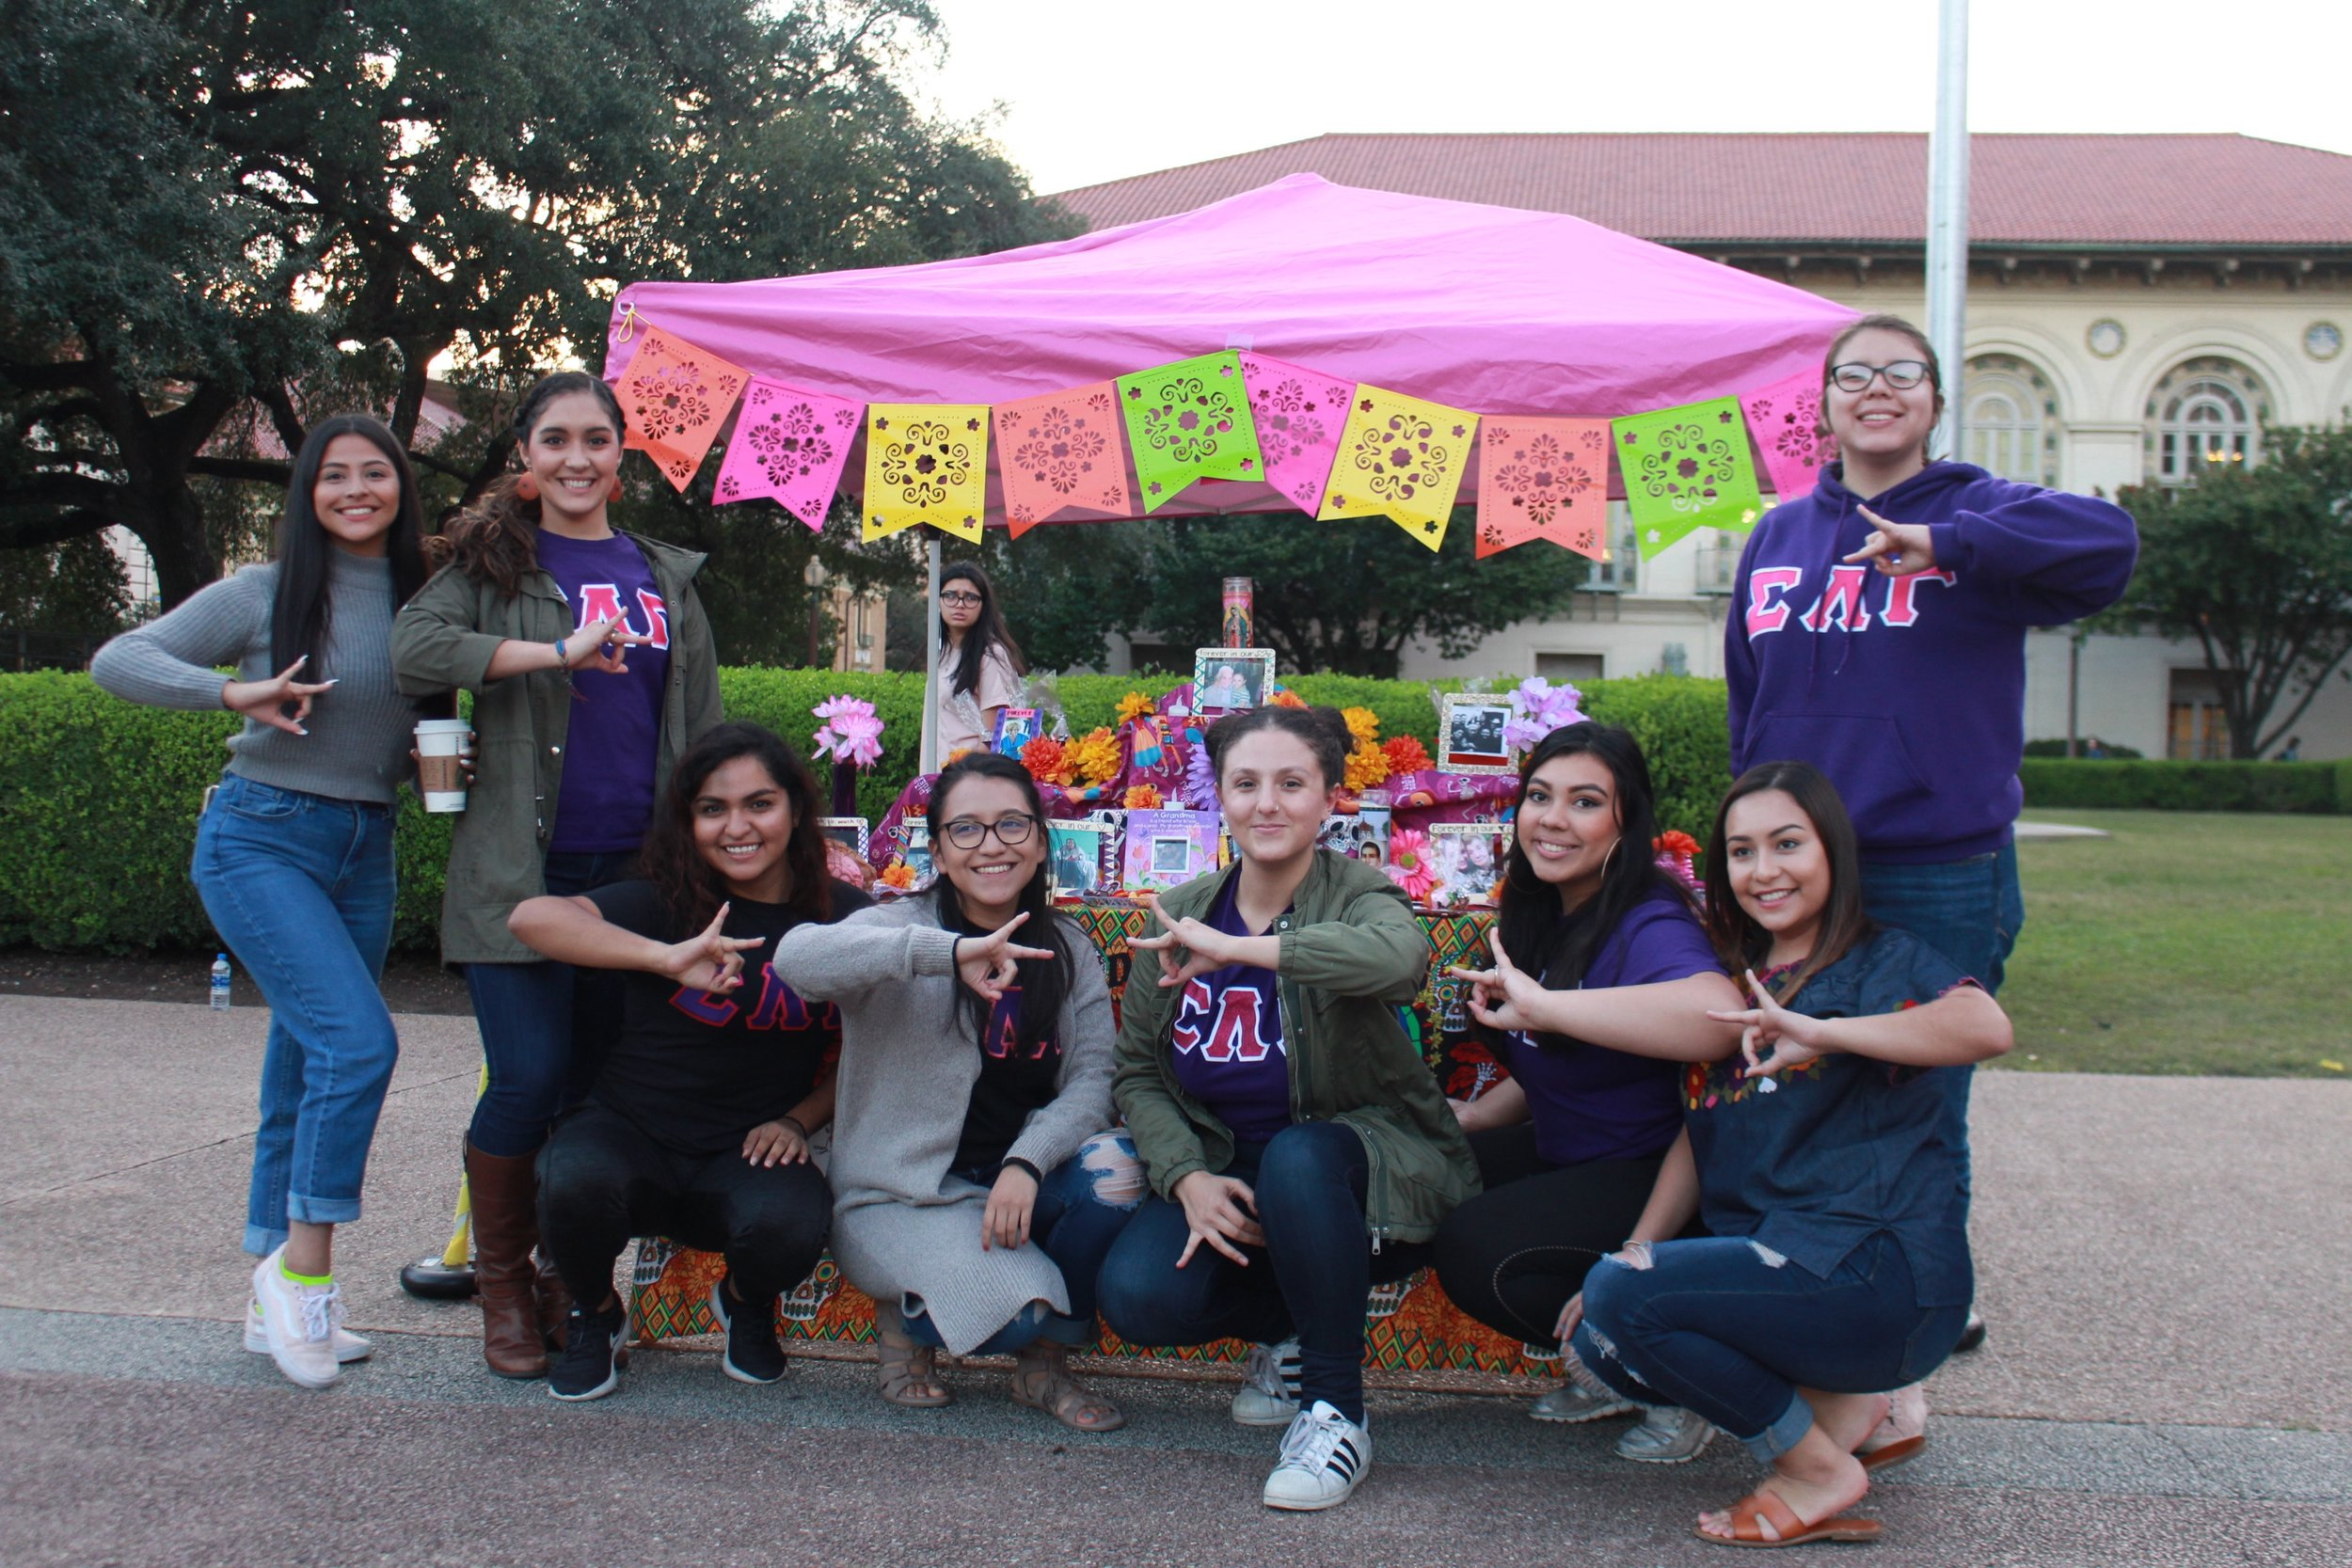 The women of Sigma Lambda Gamma proudly represent their name and their altar that is full of symbolism. From the colorful paper reminding viewers of the fragility of life, to the marigold's sweet scent which guide the dead towards the altar.